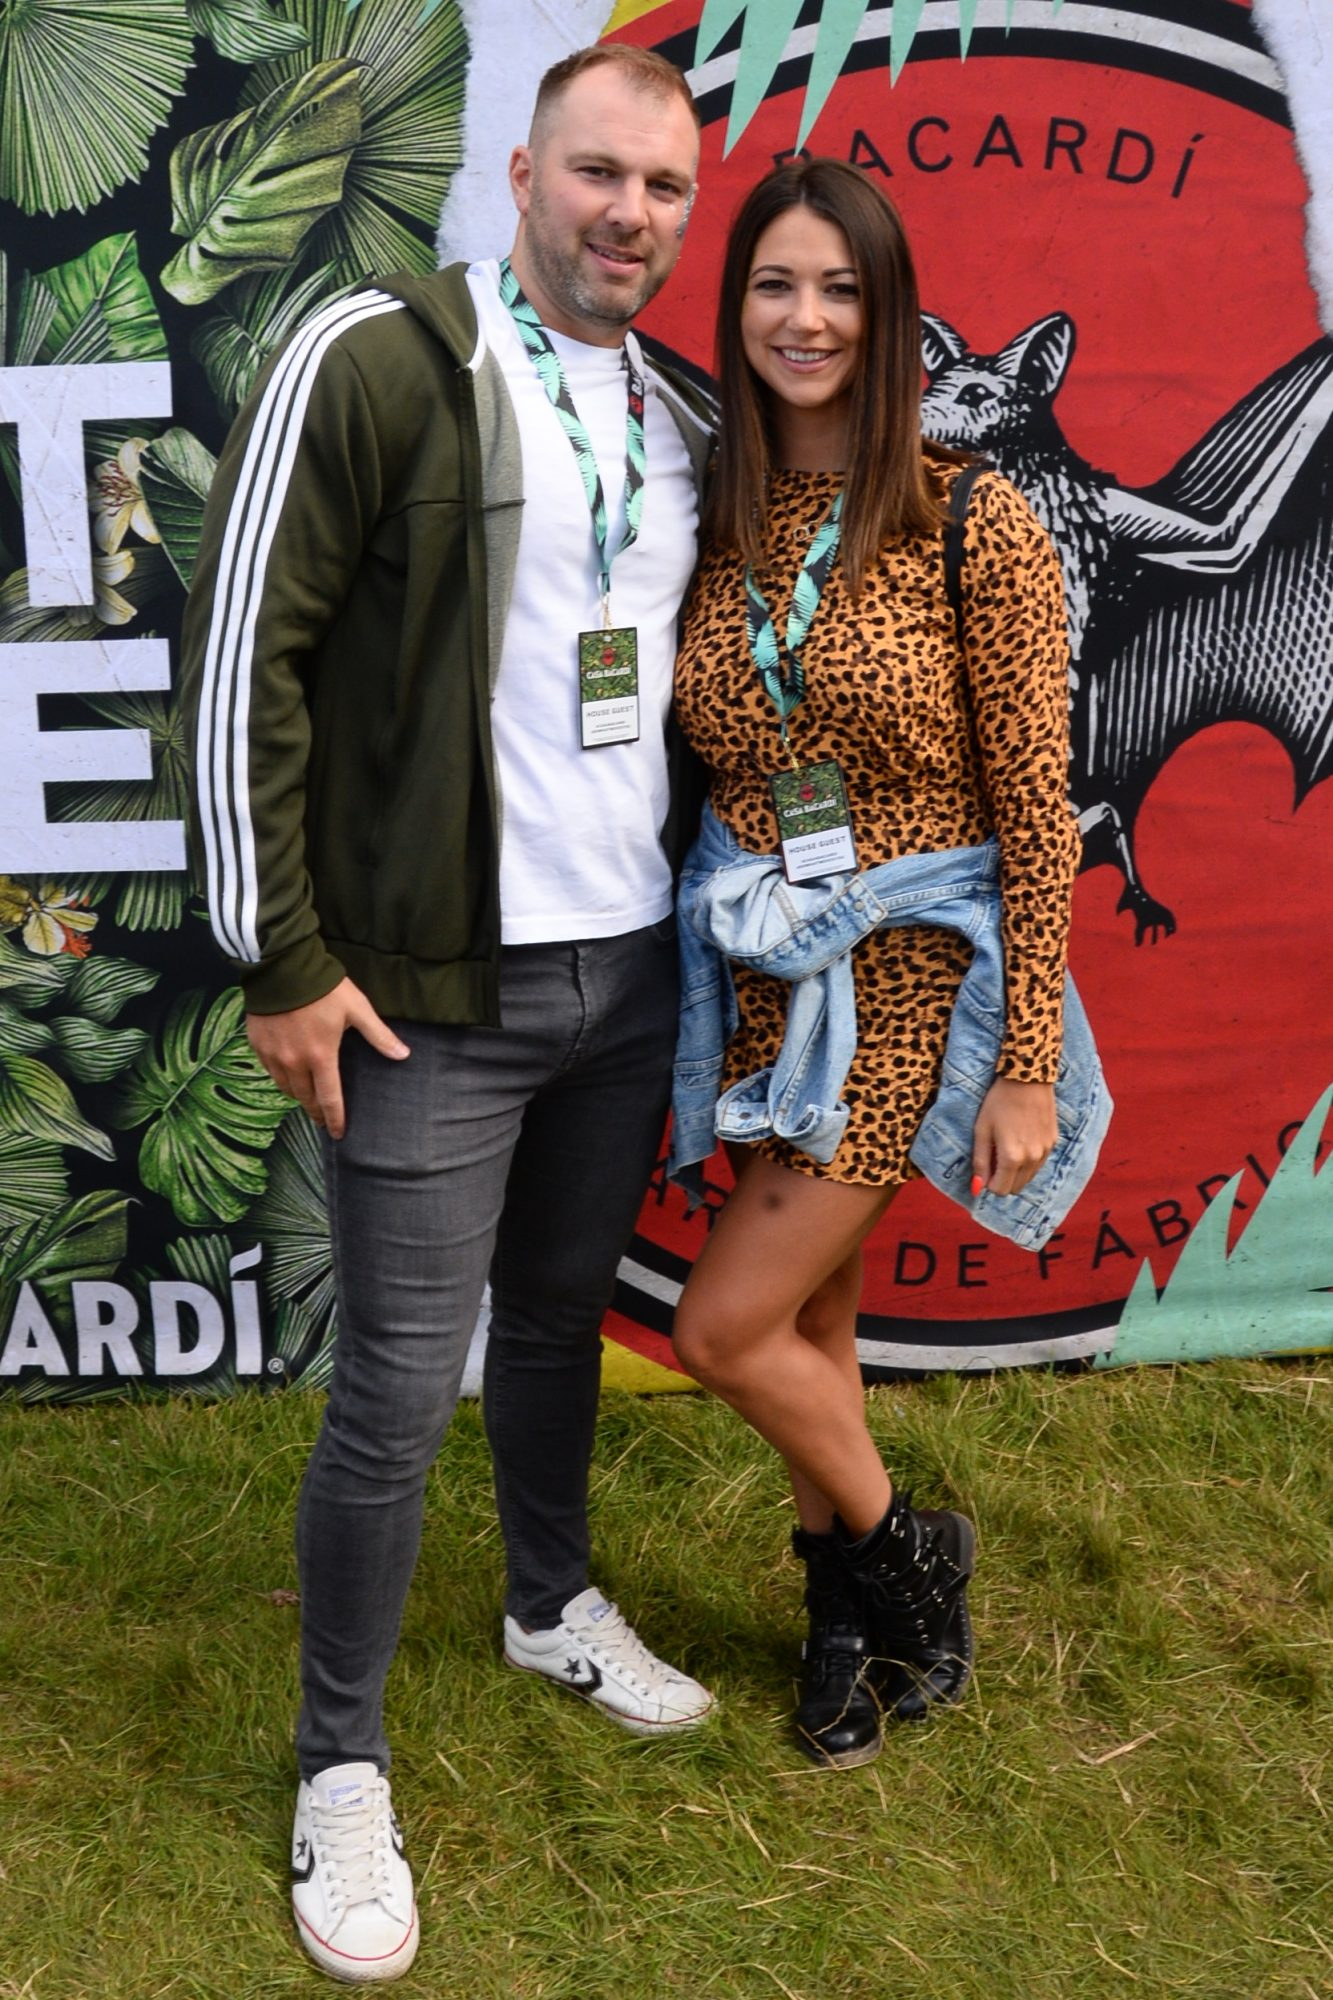 31st August 2019. Paul Devitt and Katie Hanley pictured at Casa Bacardi on day 2 of Electric Picnic. Photo: Justin Farrelly.